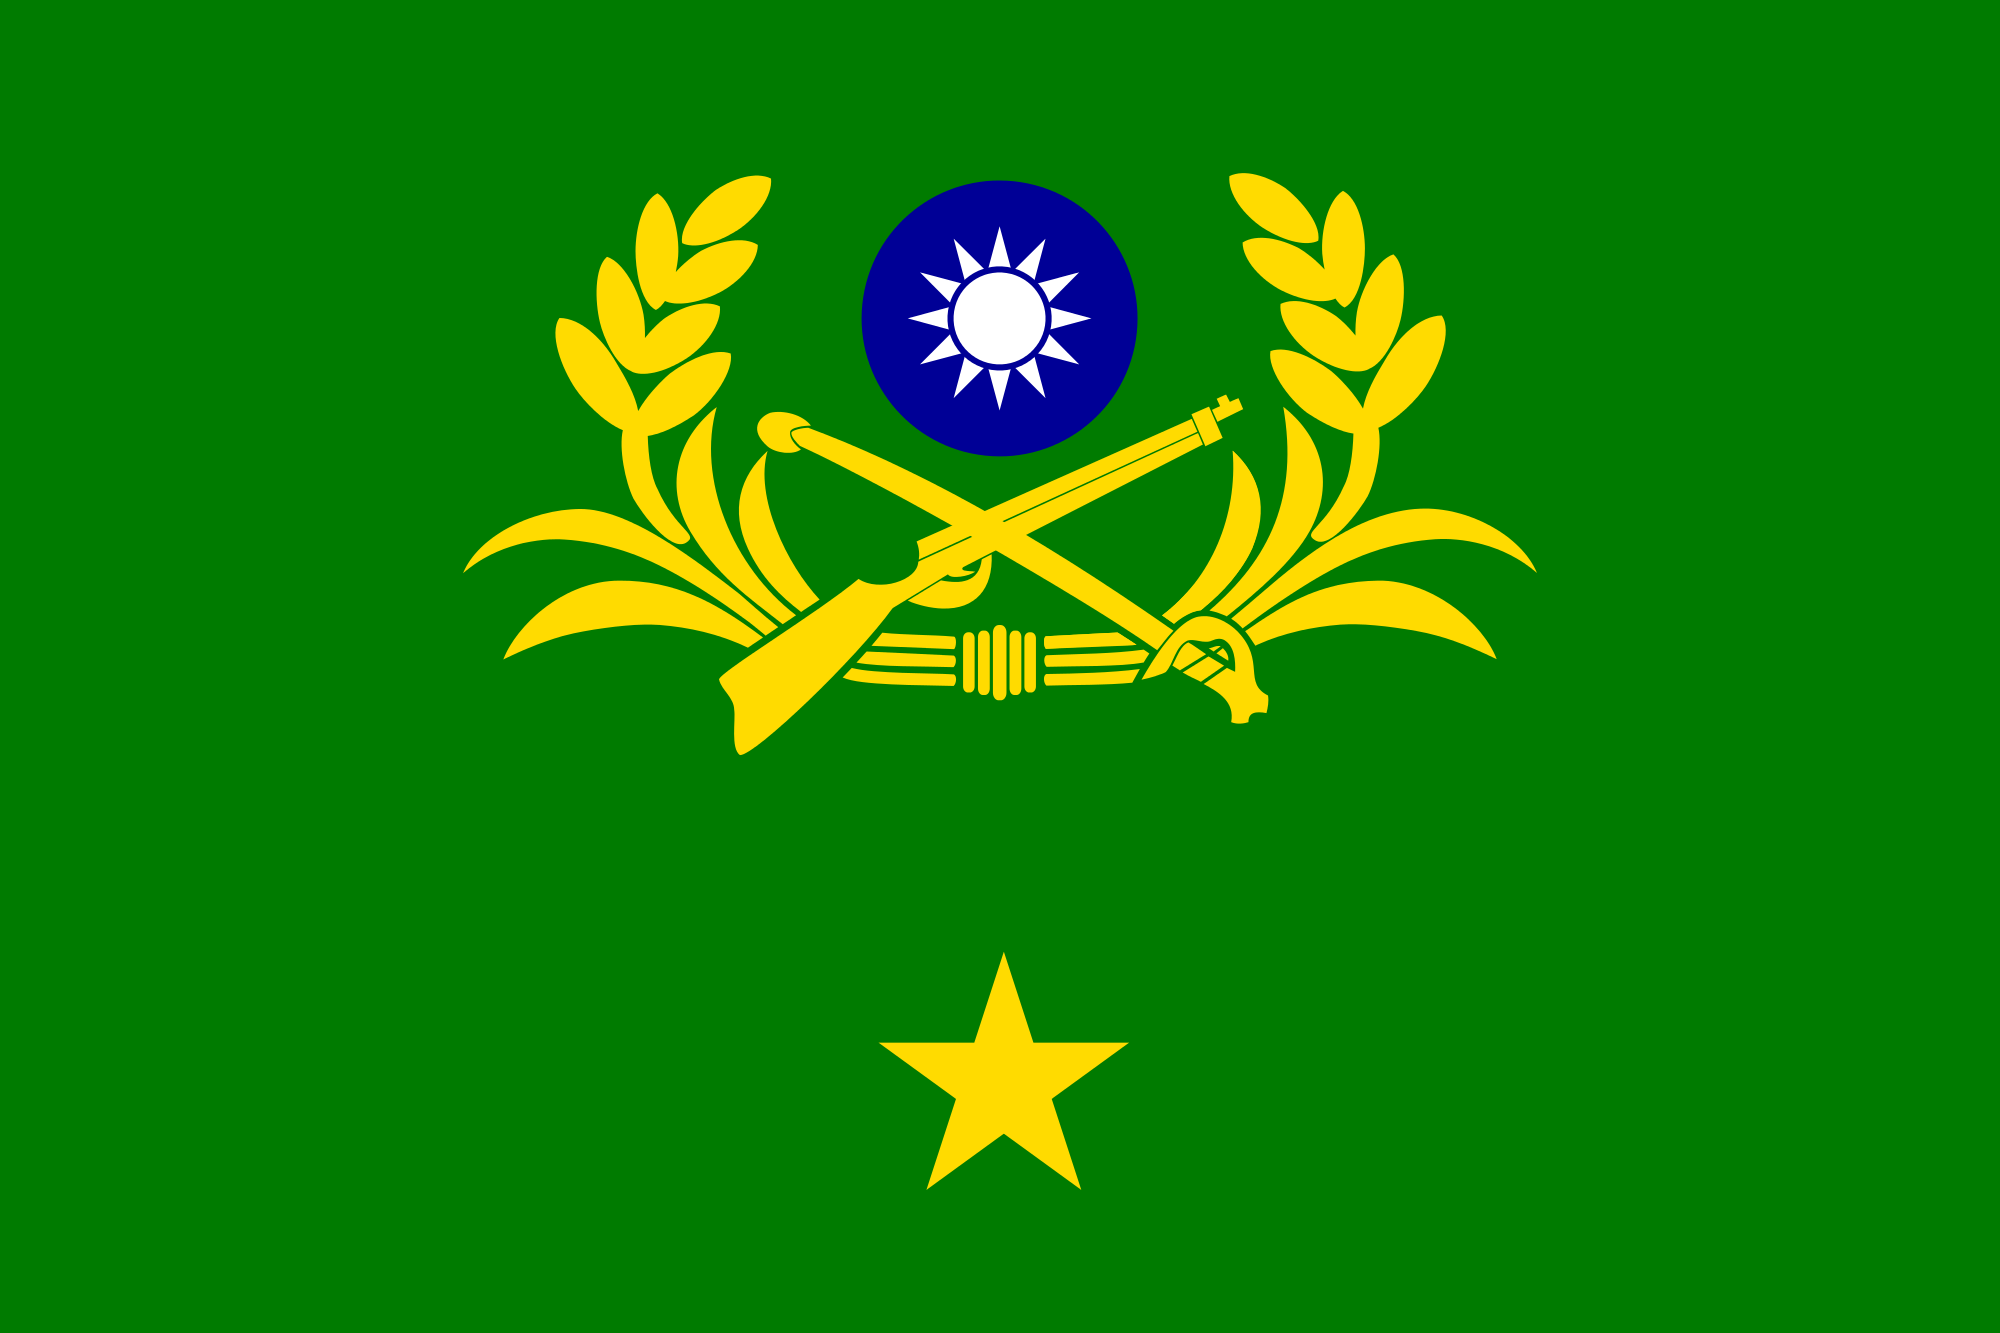 Republic of china army major general military flags pinterest major general biocorpaavc Images